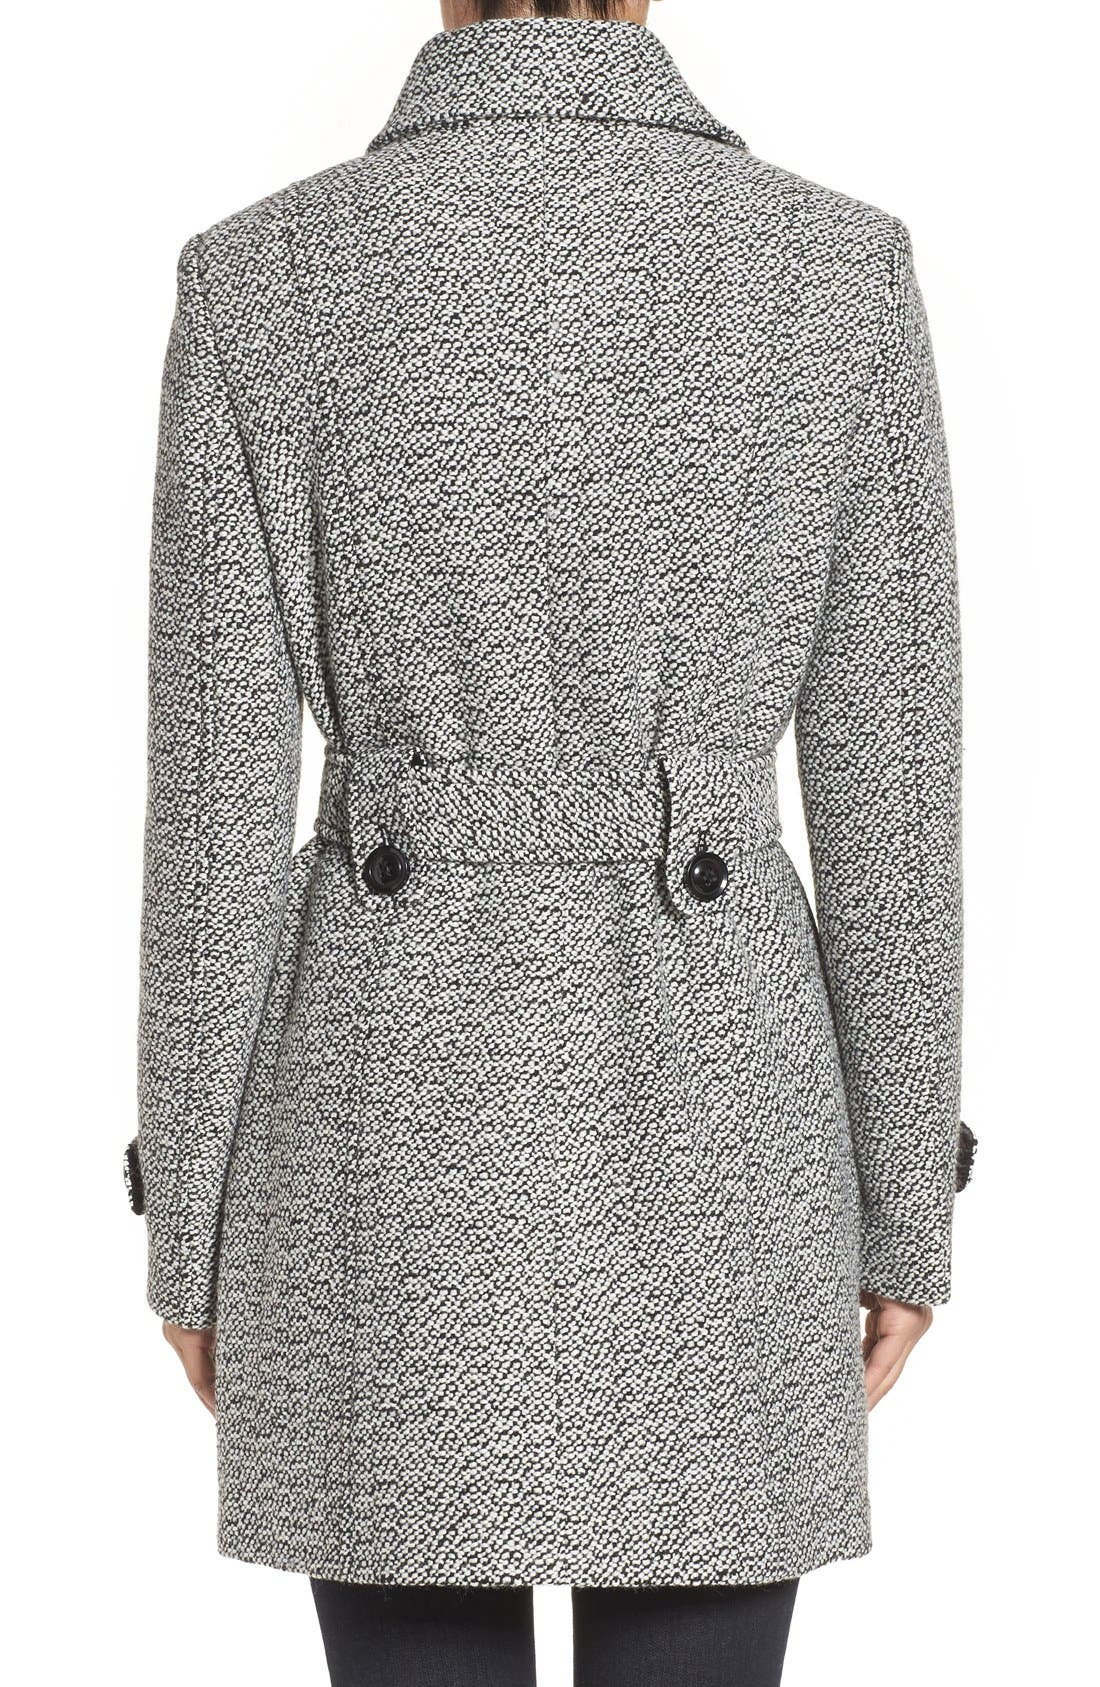 Alternate Image 2  - Gallery Belted Tweed Coat (Regular & Petite)